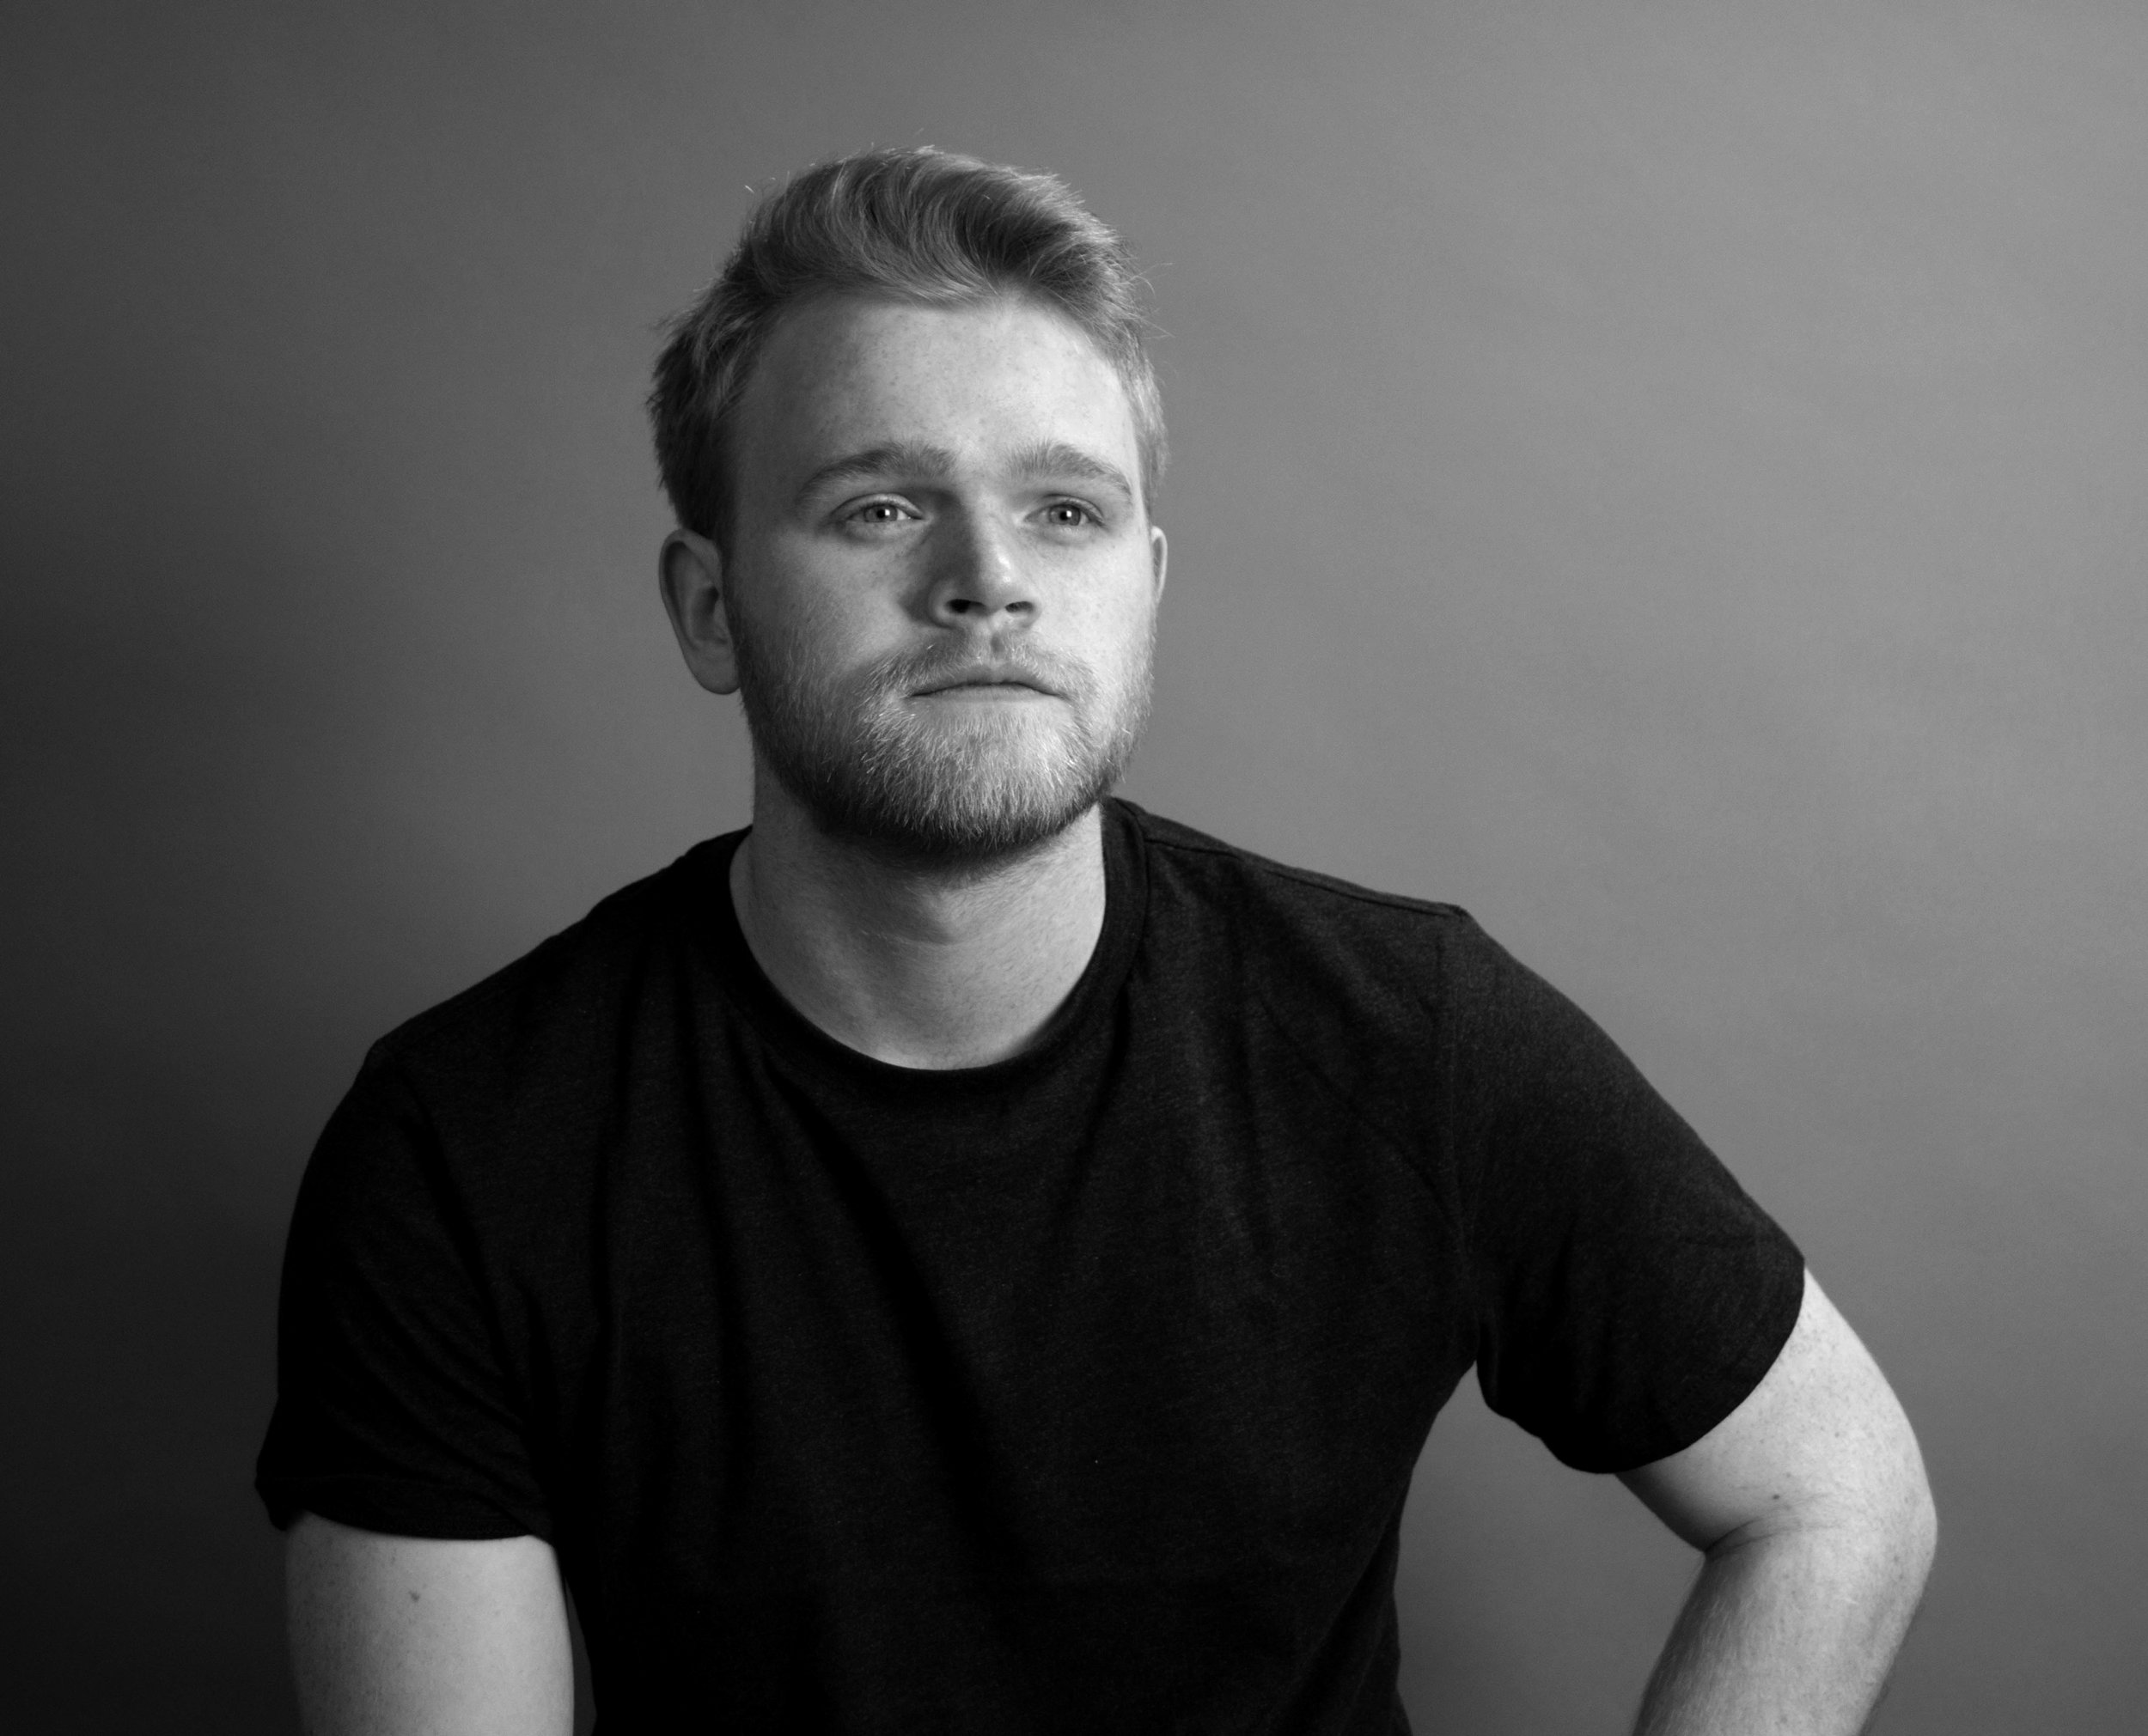 - Noah Howells is an industrial designer specializing in furniture design and material exploration. He received a Bachelor's of Science in Industrial Design with a concentration in Furniture Design from Appalachian State University, along with a Minor in Marketing.